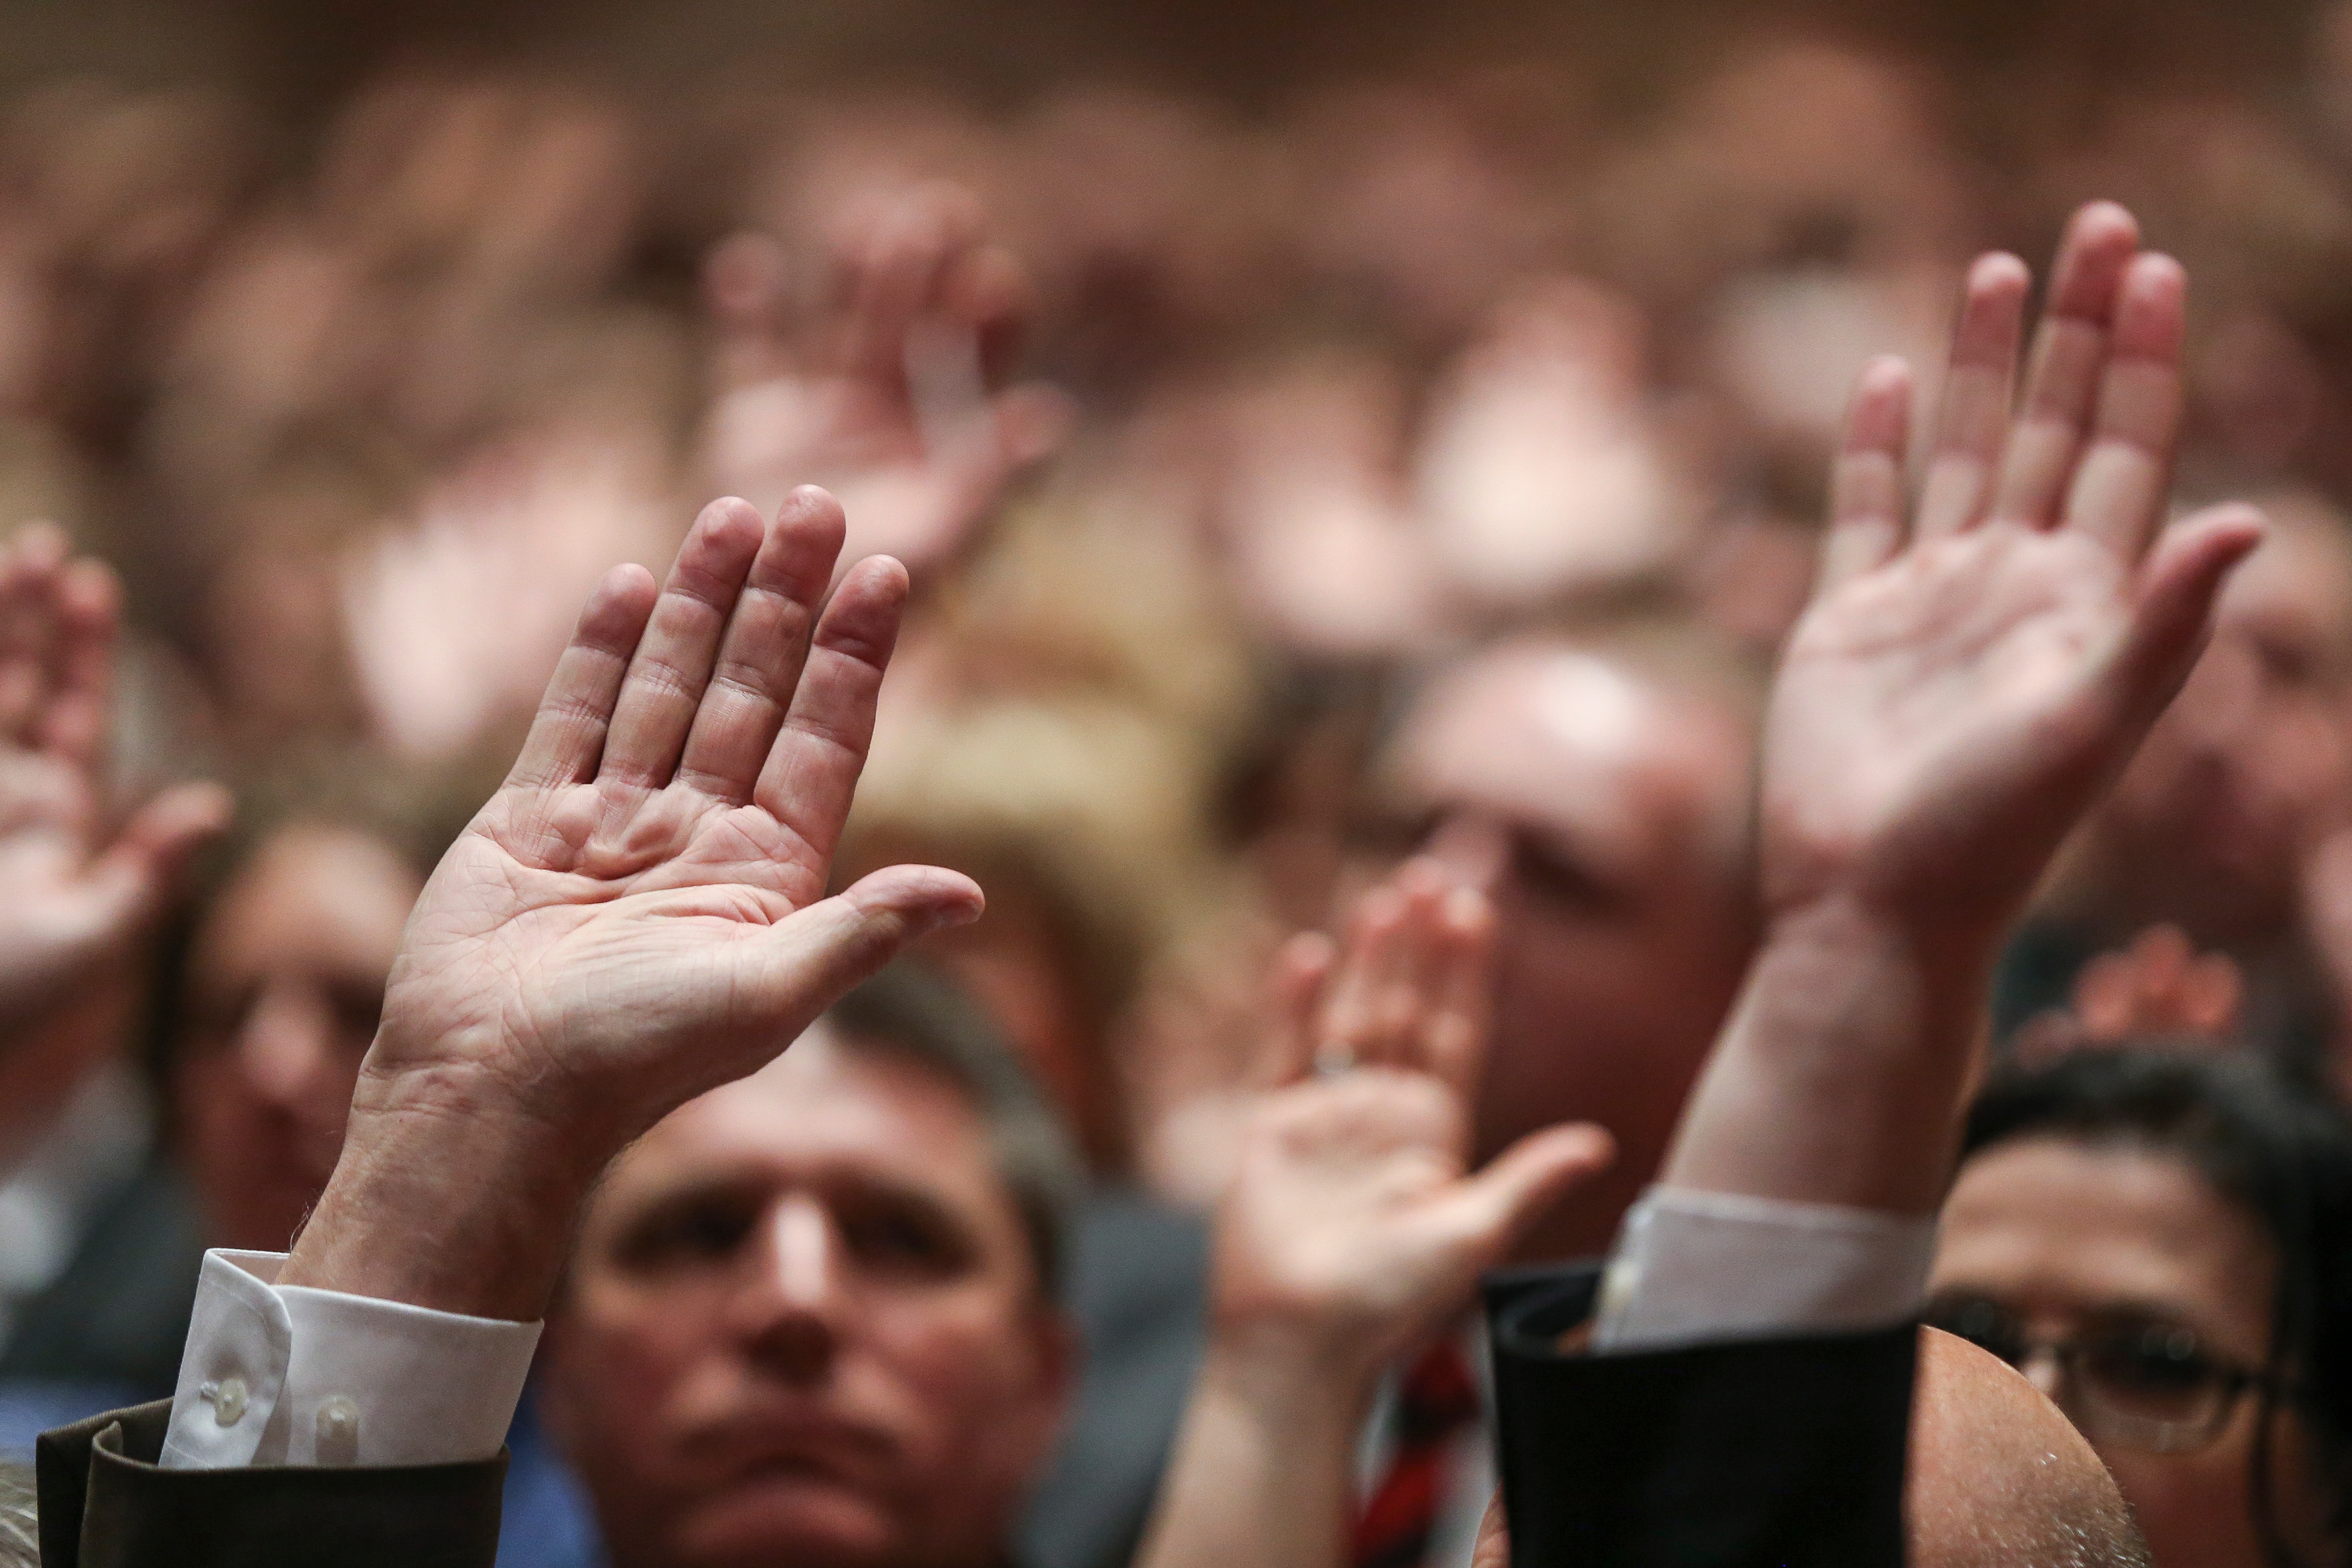 Conferencegoers raise their hands to sustain church leadership during the Saturday afternoon session of the 188th Annual General Conference of the LDS Church at the Conference Center in Salt Lake City on March 31, 2018.